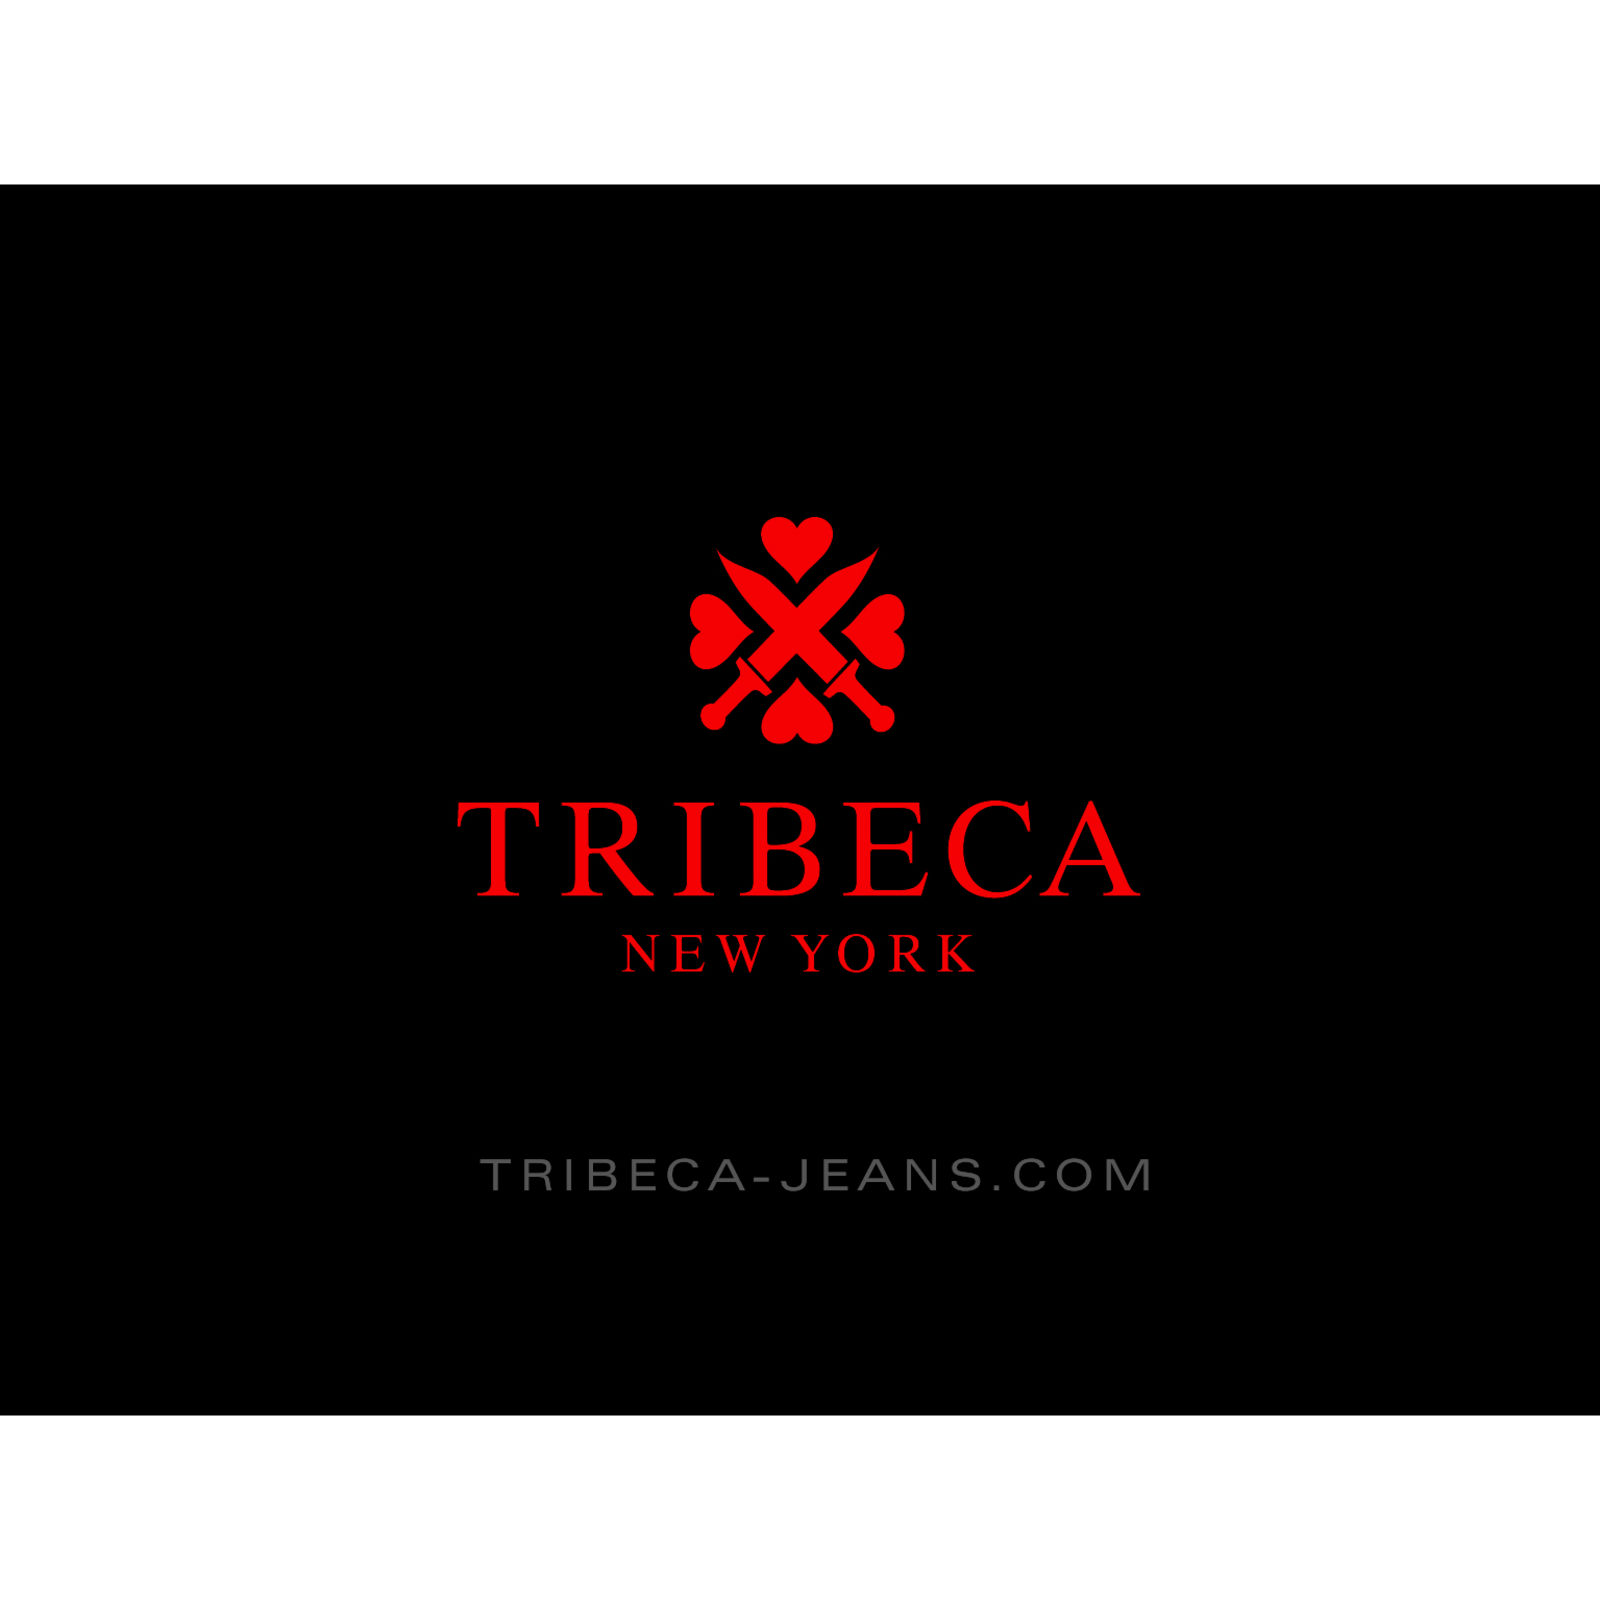 TRIBECA New York